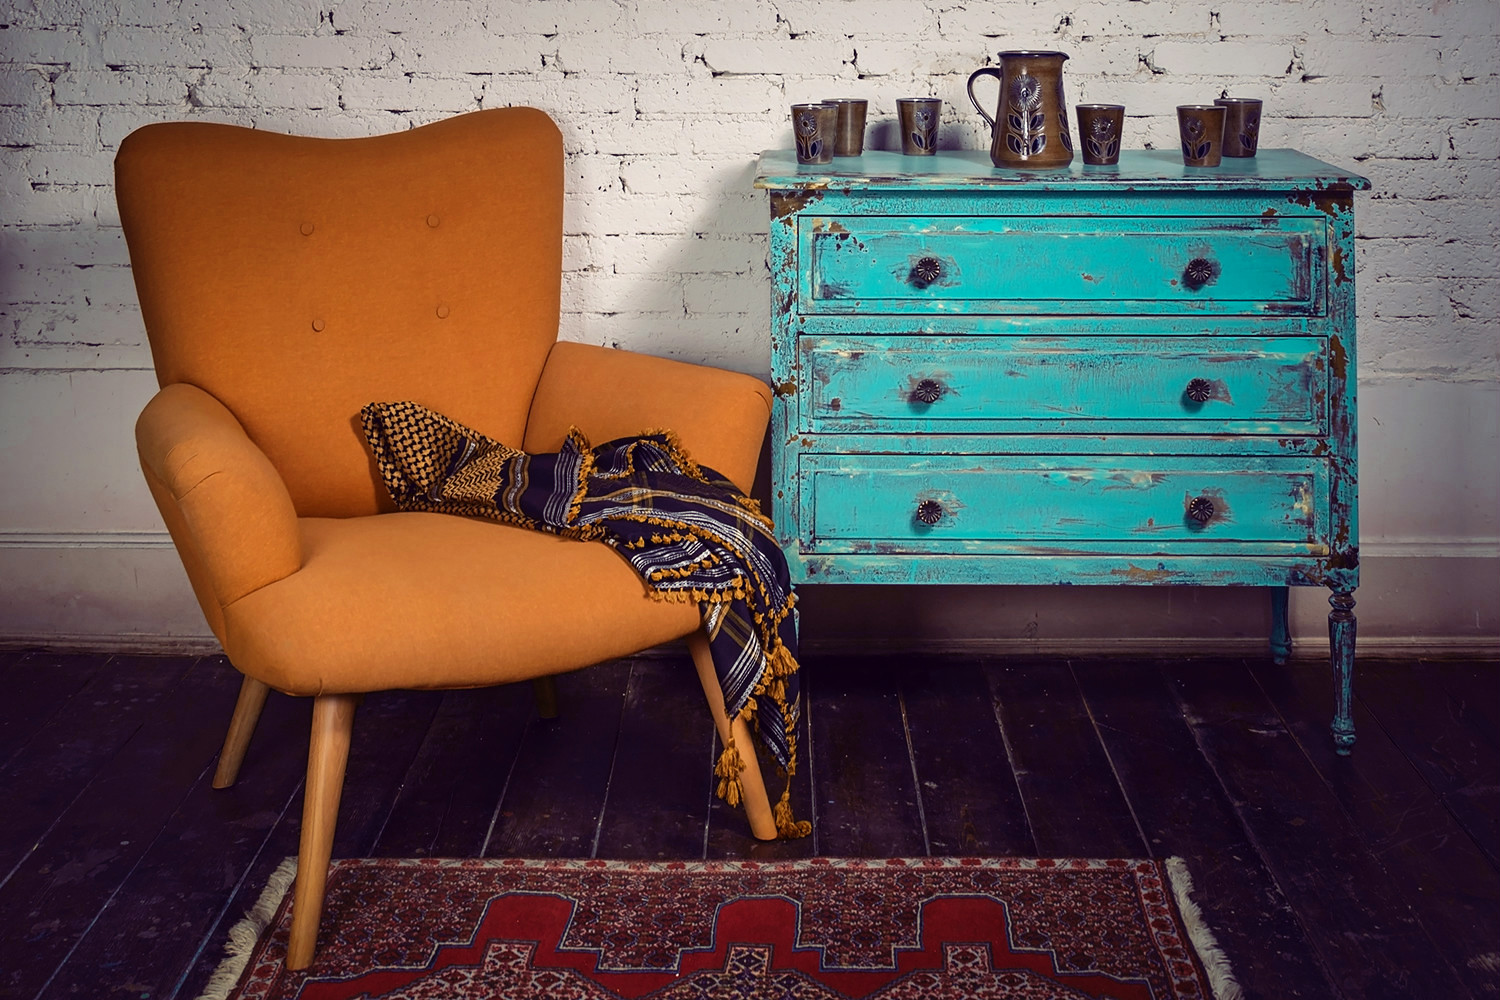 Vintage Furniture and Bedbugs